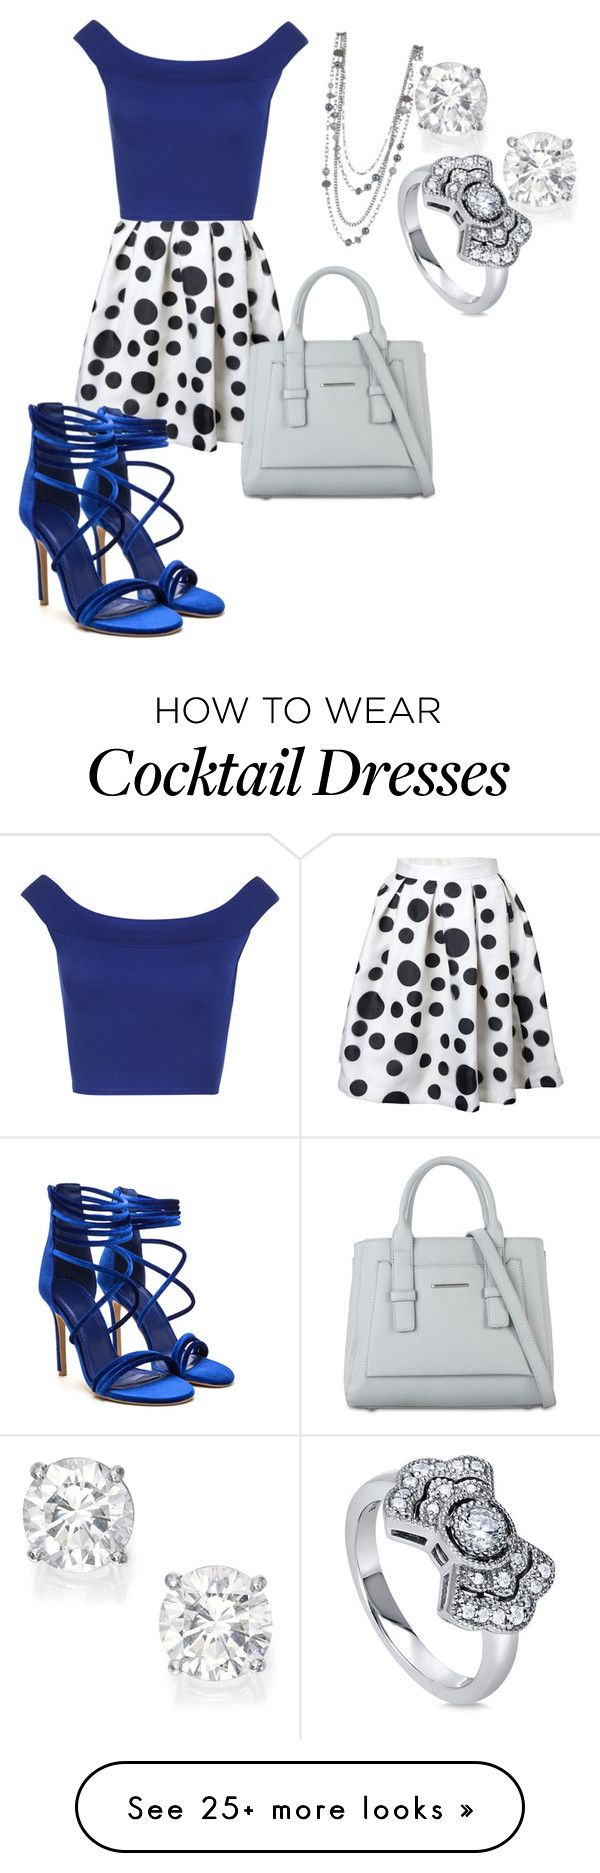 """""""polka dot dress"""" by hannahkenny-1 on Polyvore featuring WearAll and BERRICLE"""